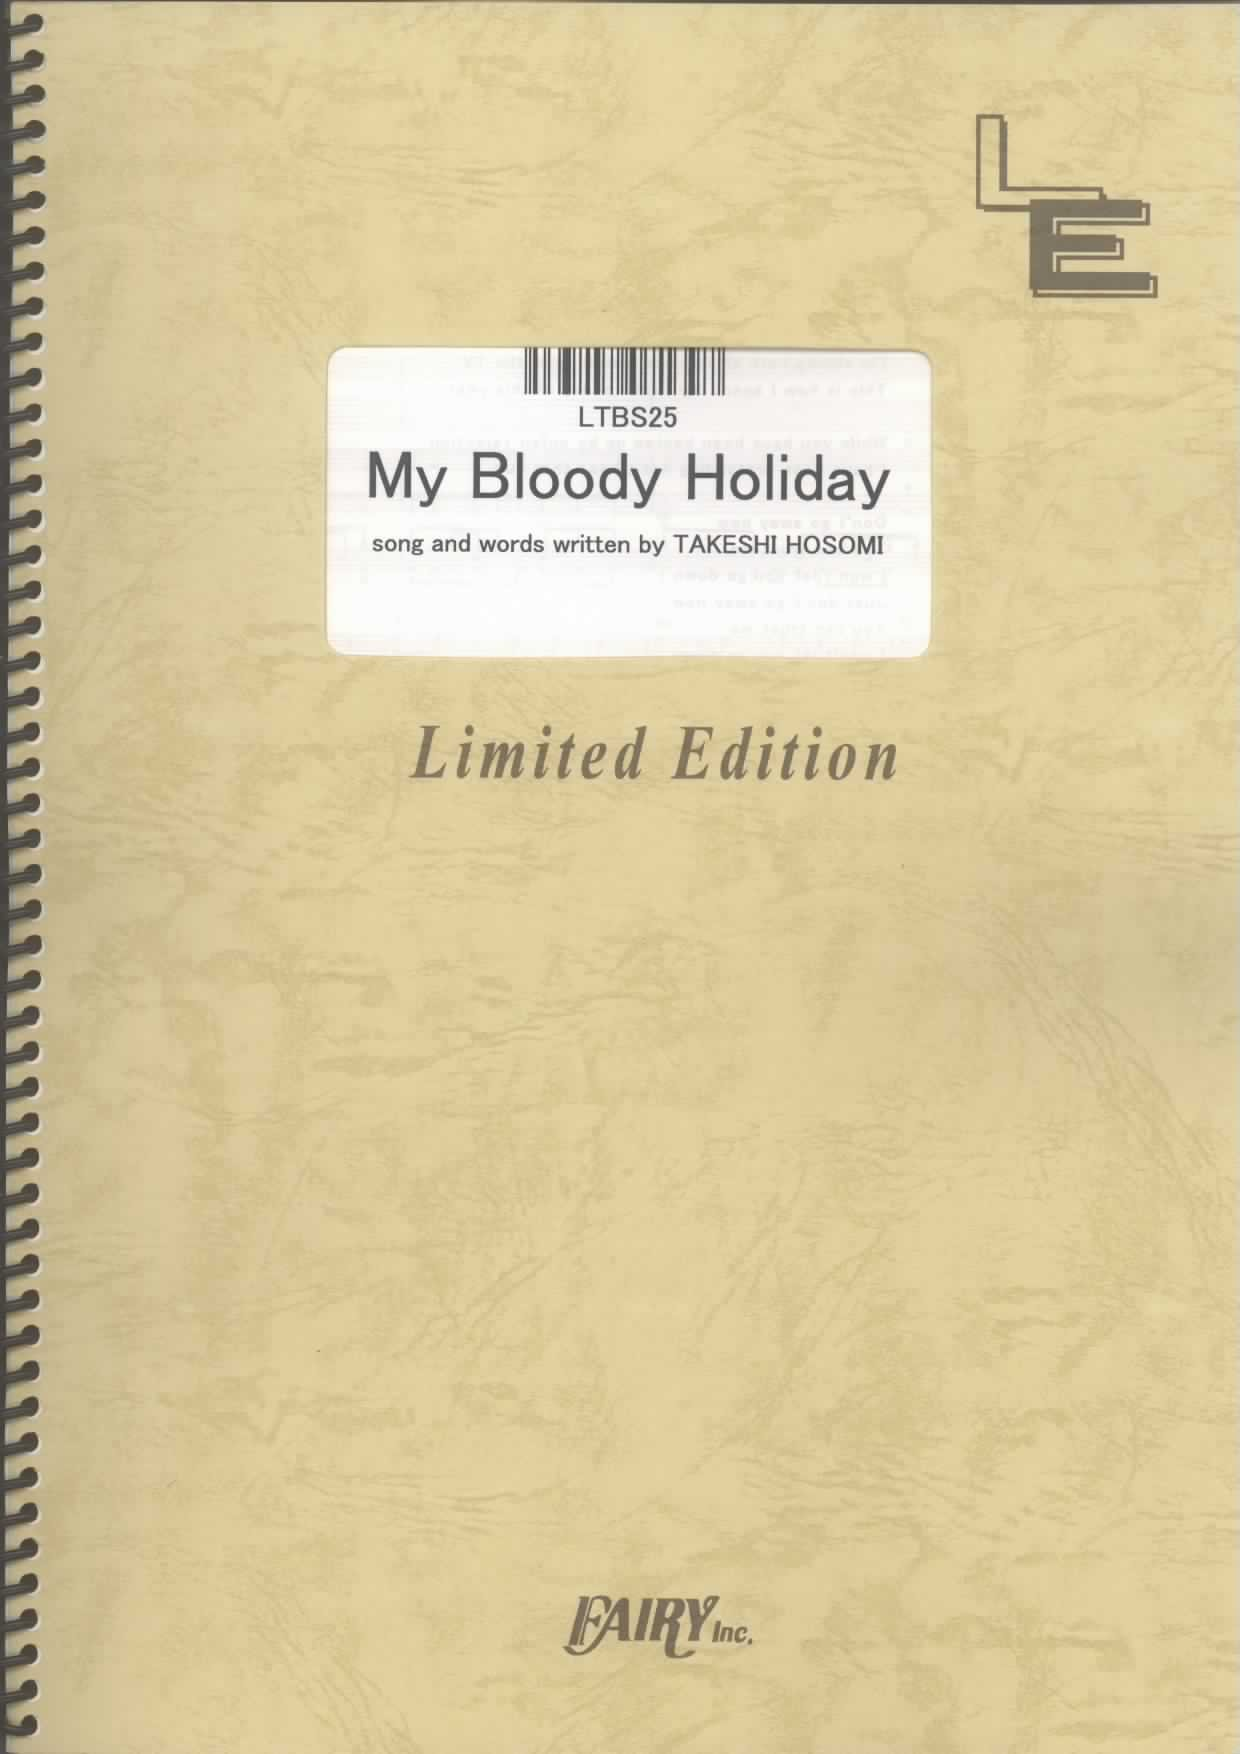 My Bloody Holiday by ELLEGARDEN LTBS25 pdf